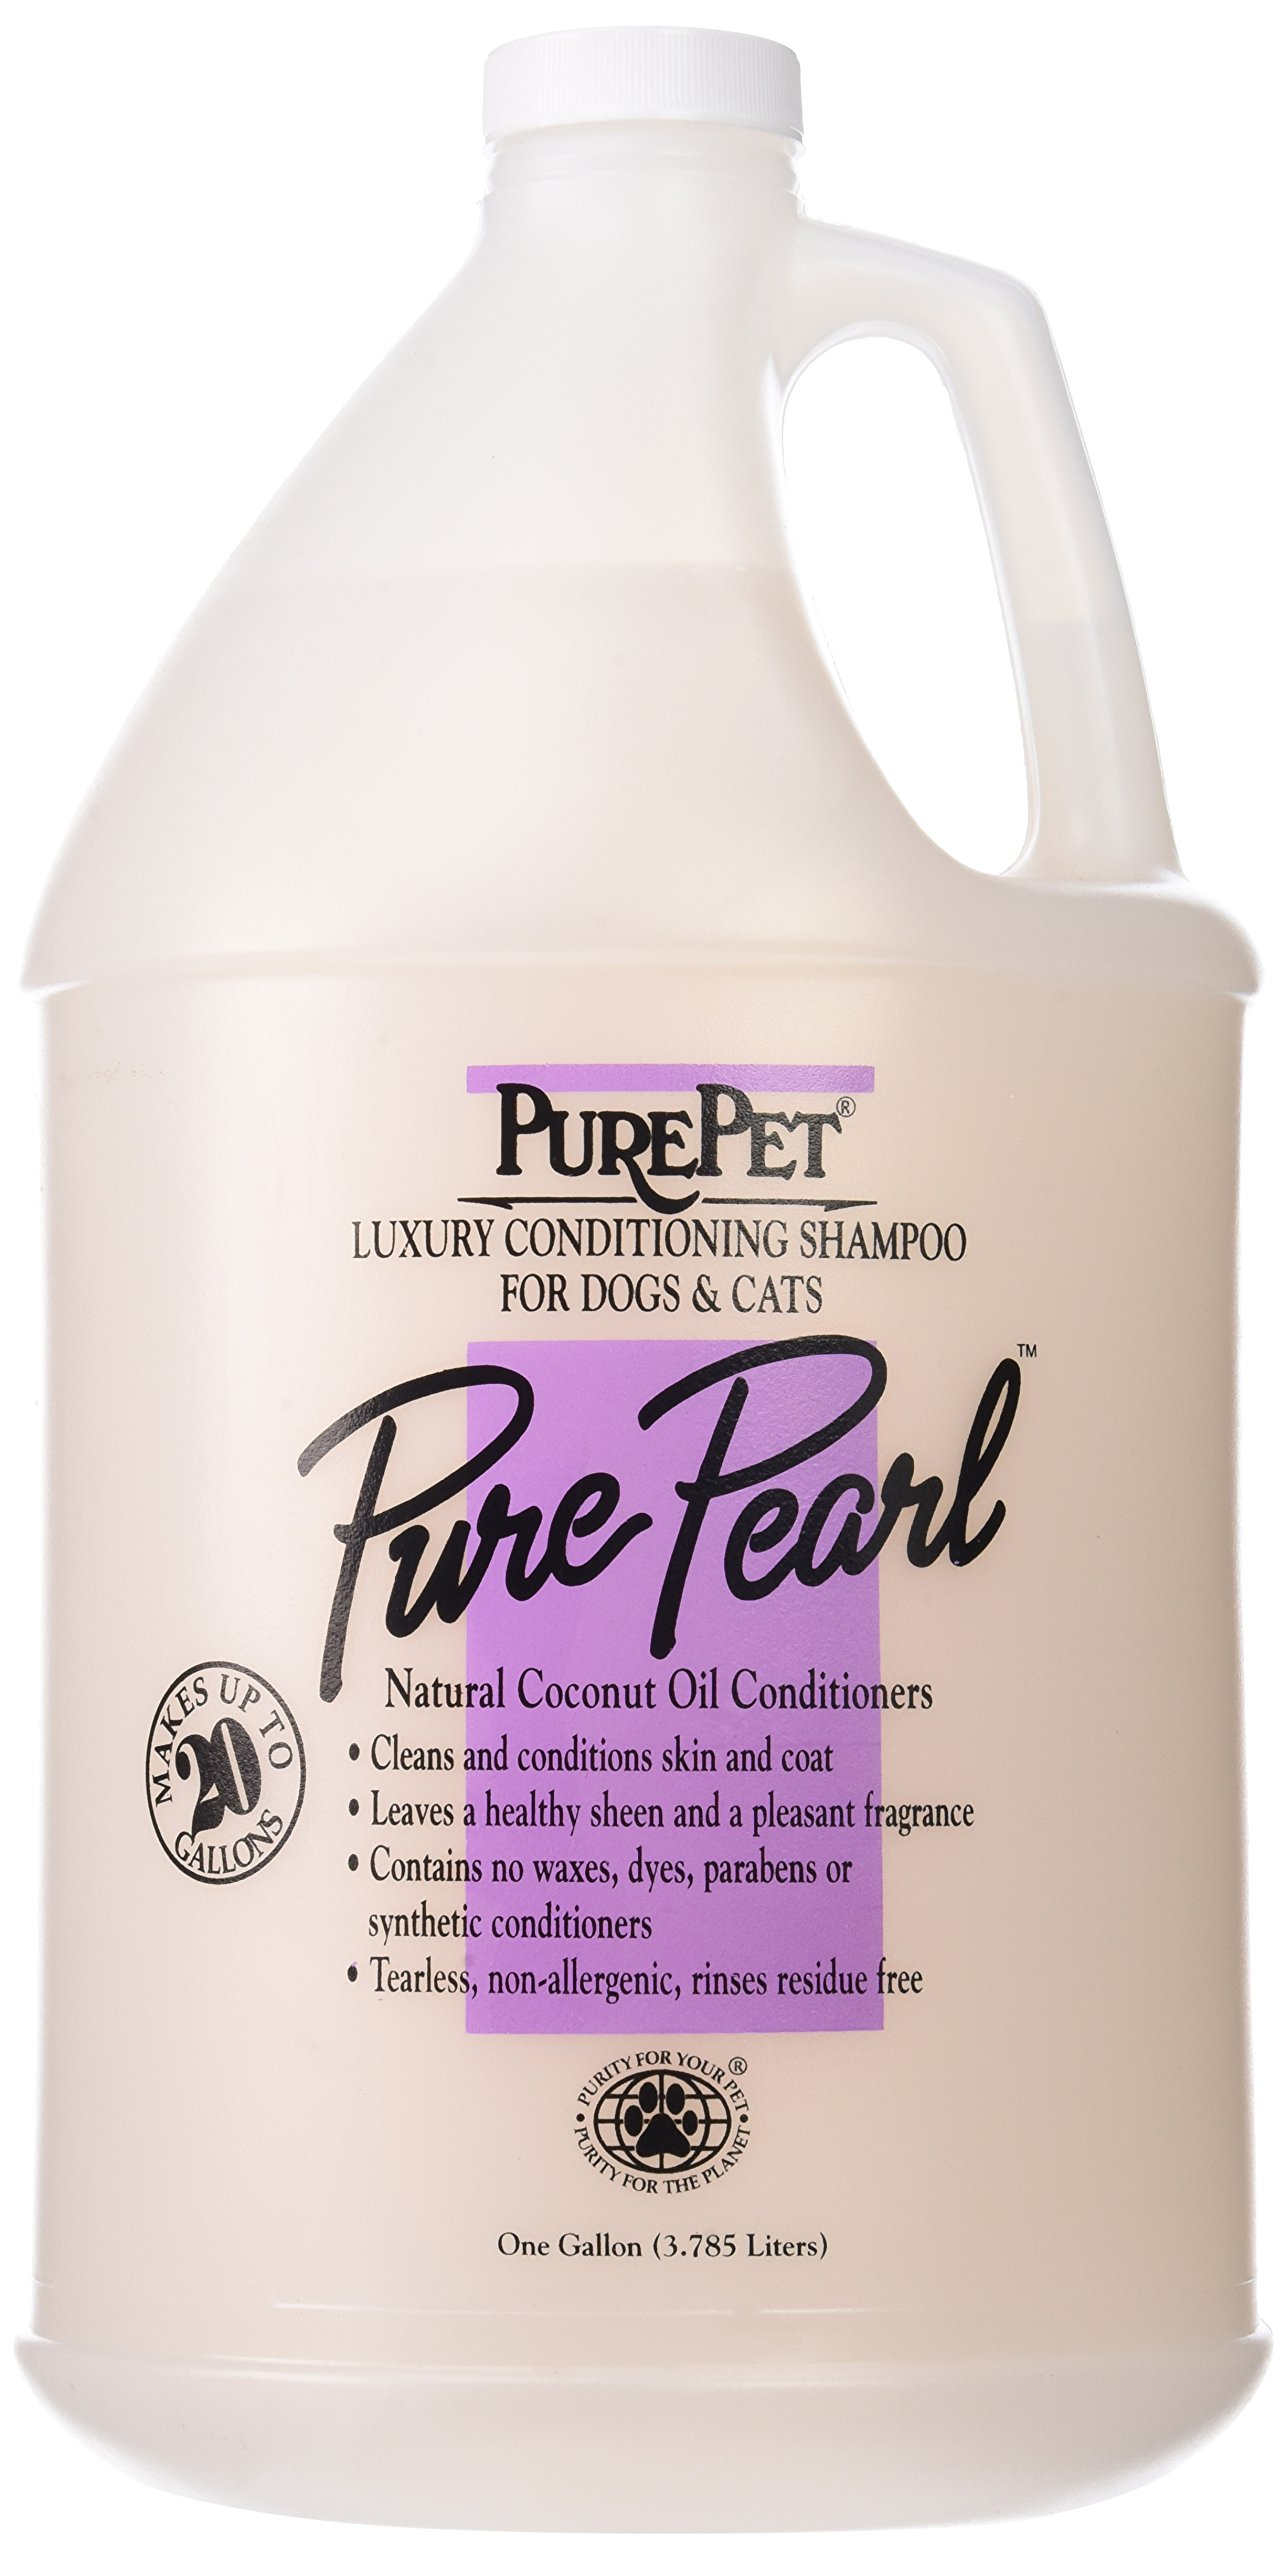 Pure Pet Pure Pearl Dog and Cat Shampoo, 1-Gallon